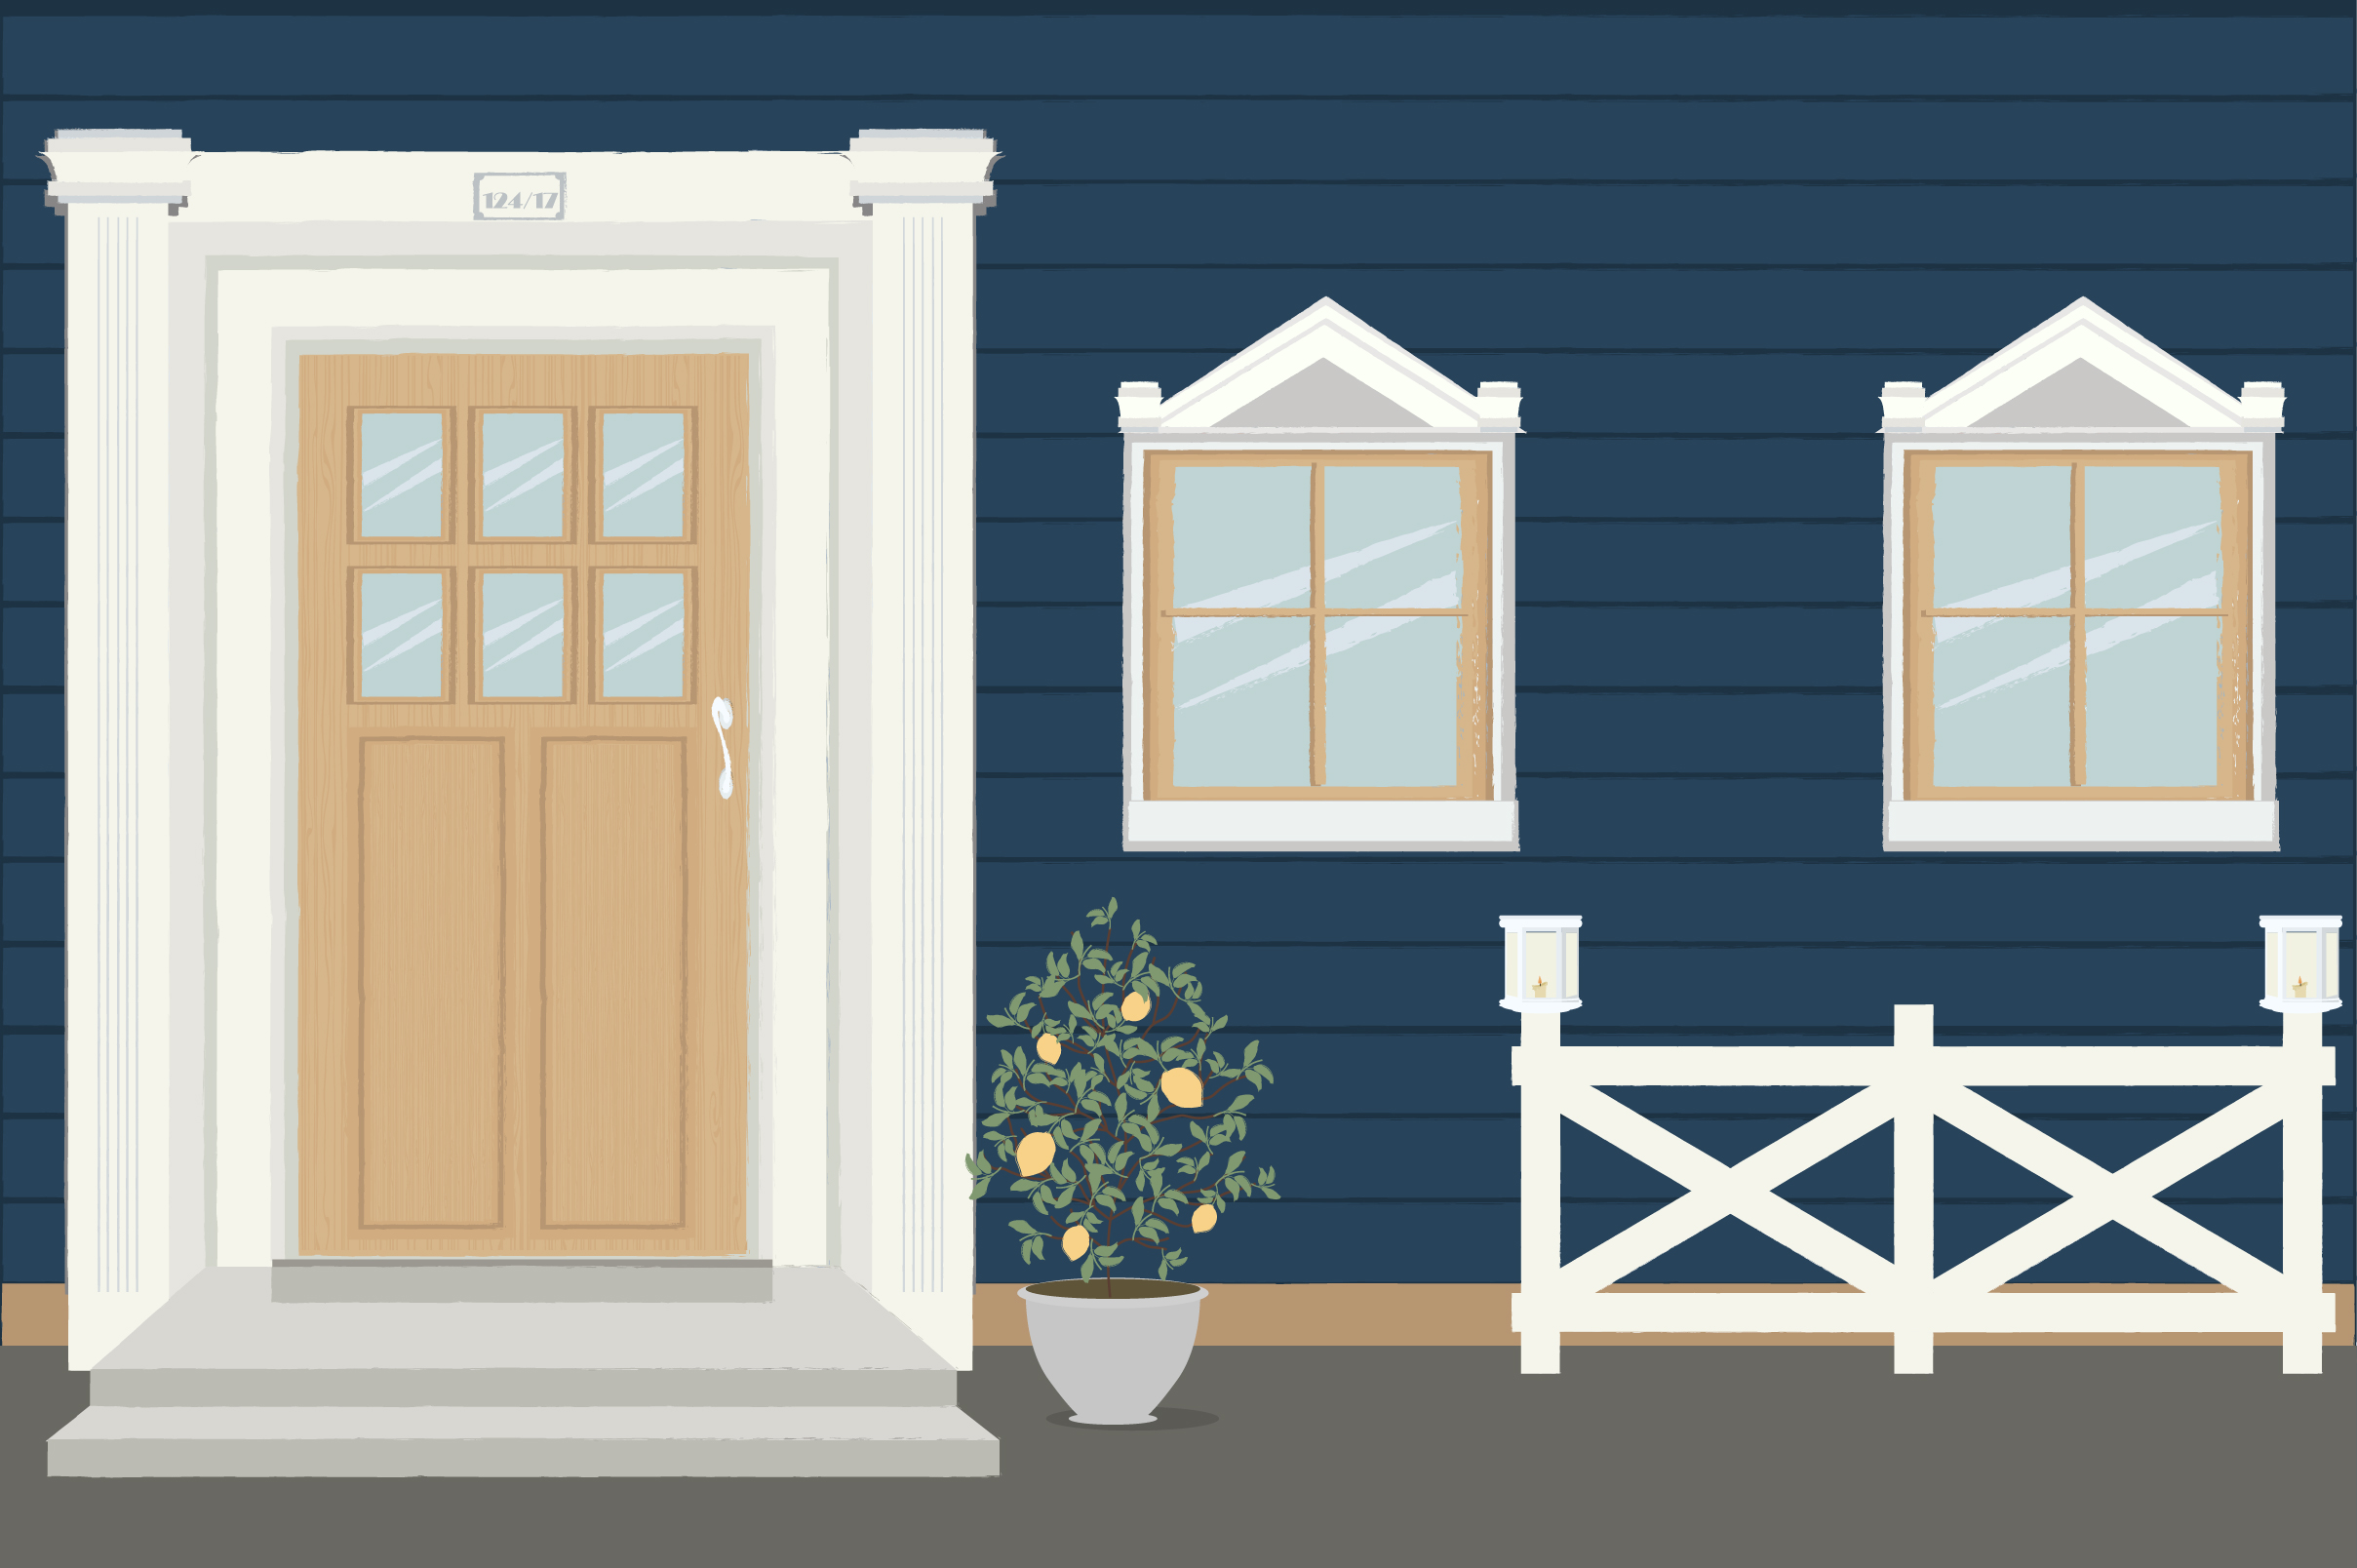 Doors design collection example image 16